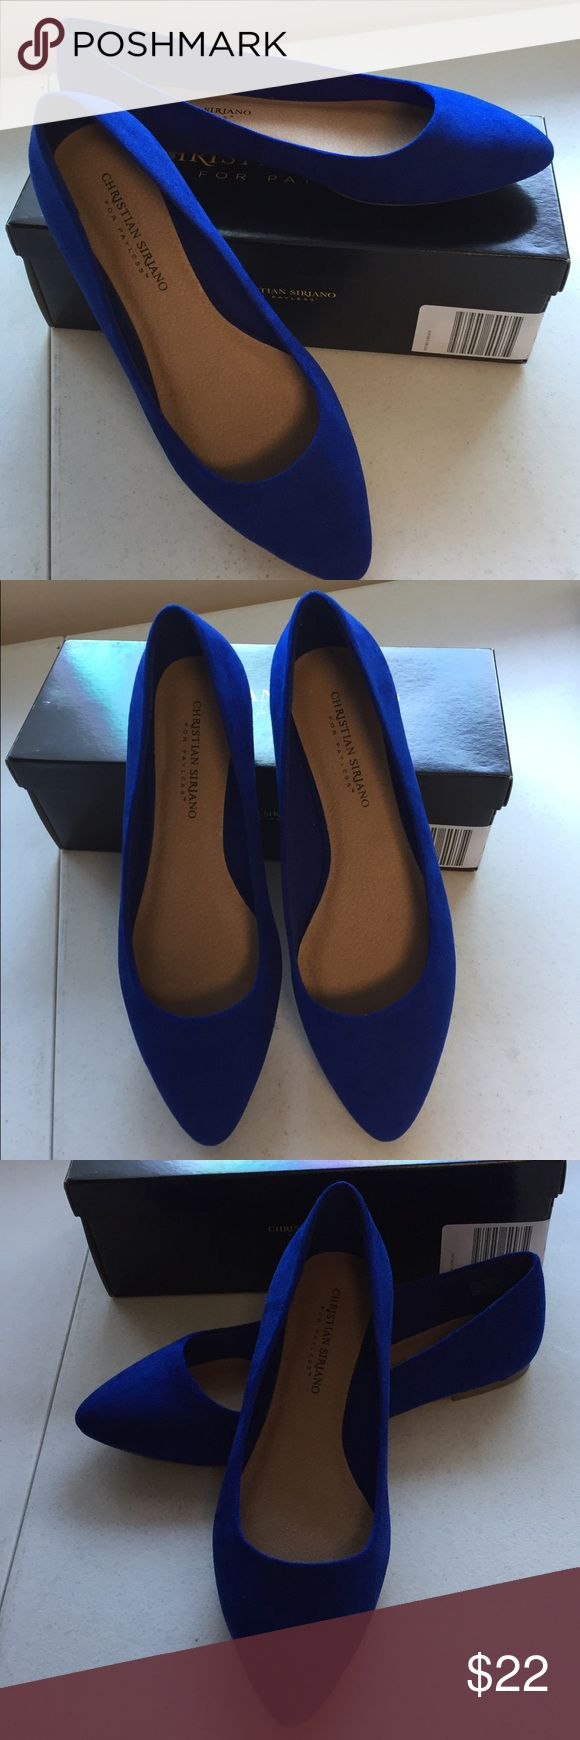 Christian Siriano cobalt flats Christian Siriano for Payless cobalt flats. Suede look uppers. Brand new in the box. All man made materials. Please ask for additional information if needed before purchasing. Christian Siriano Shoes Flats & Loafers